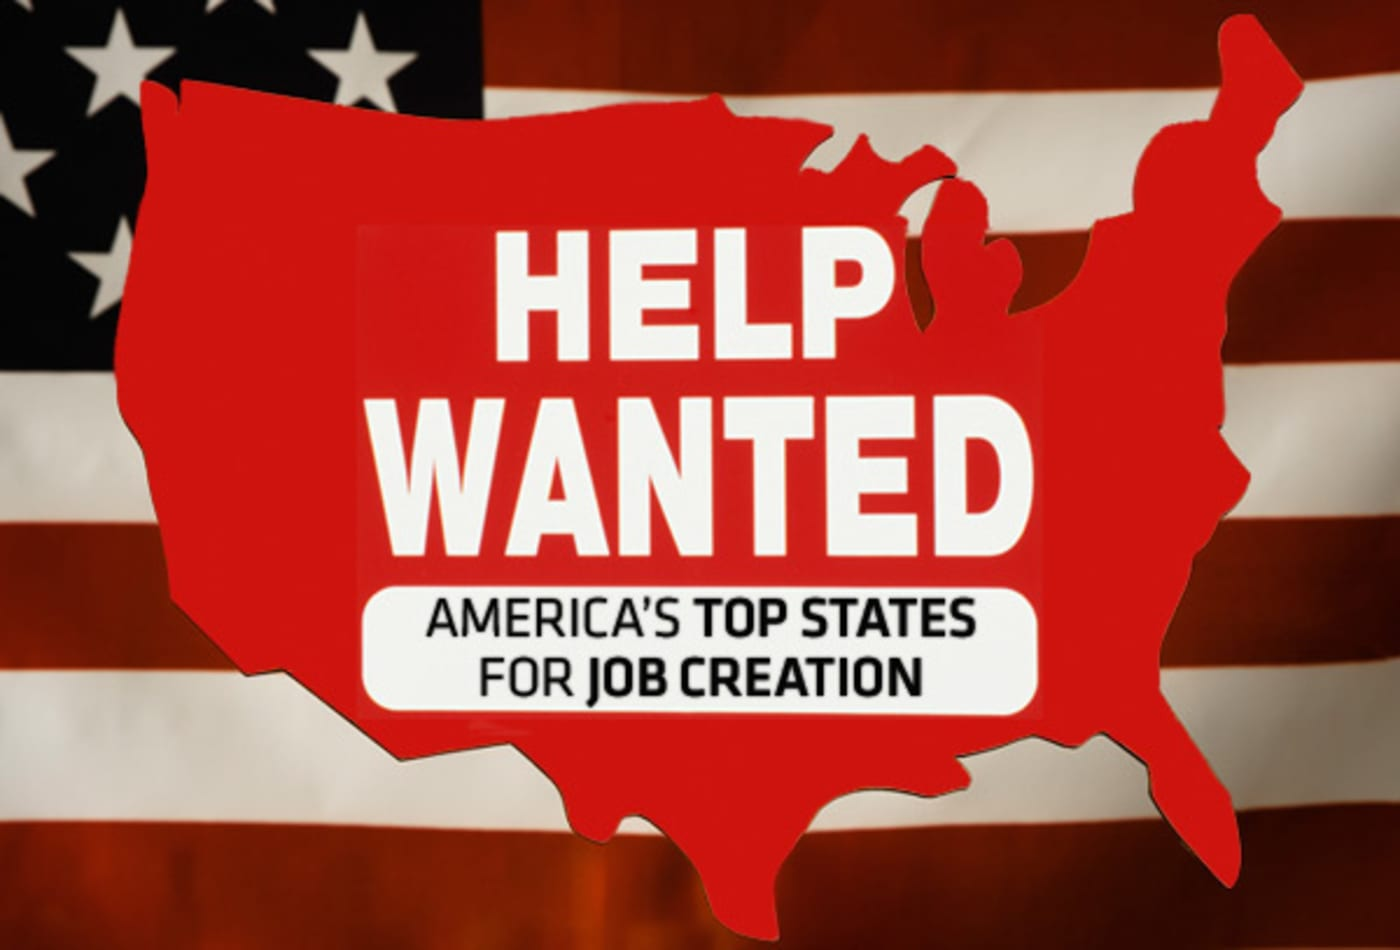 top-job-producing-states-cover.jpg